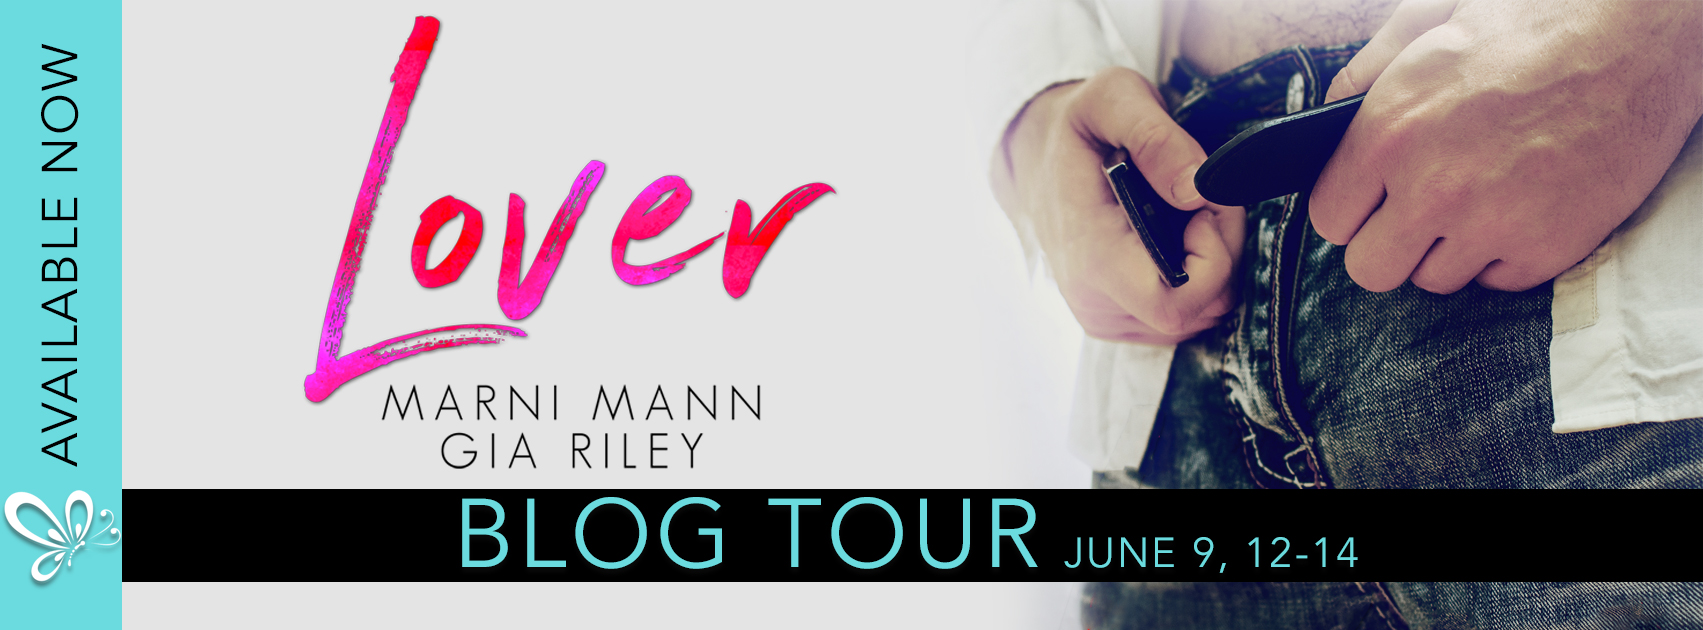 Lover by Marni Mann & Gia Riley Blog Tour Reviews